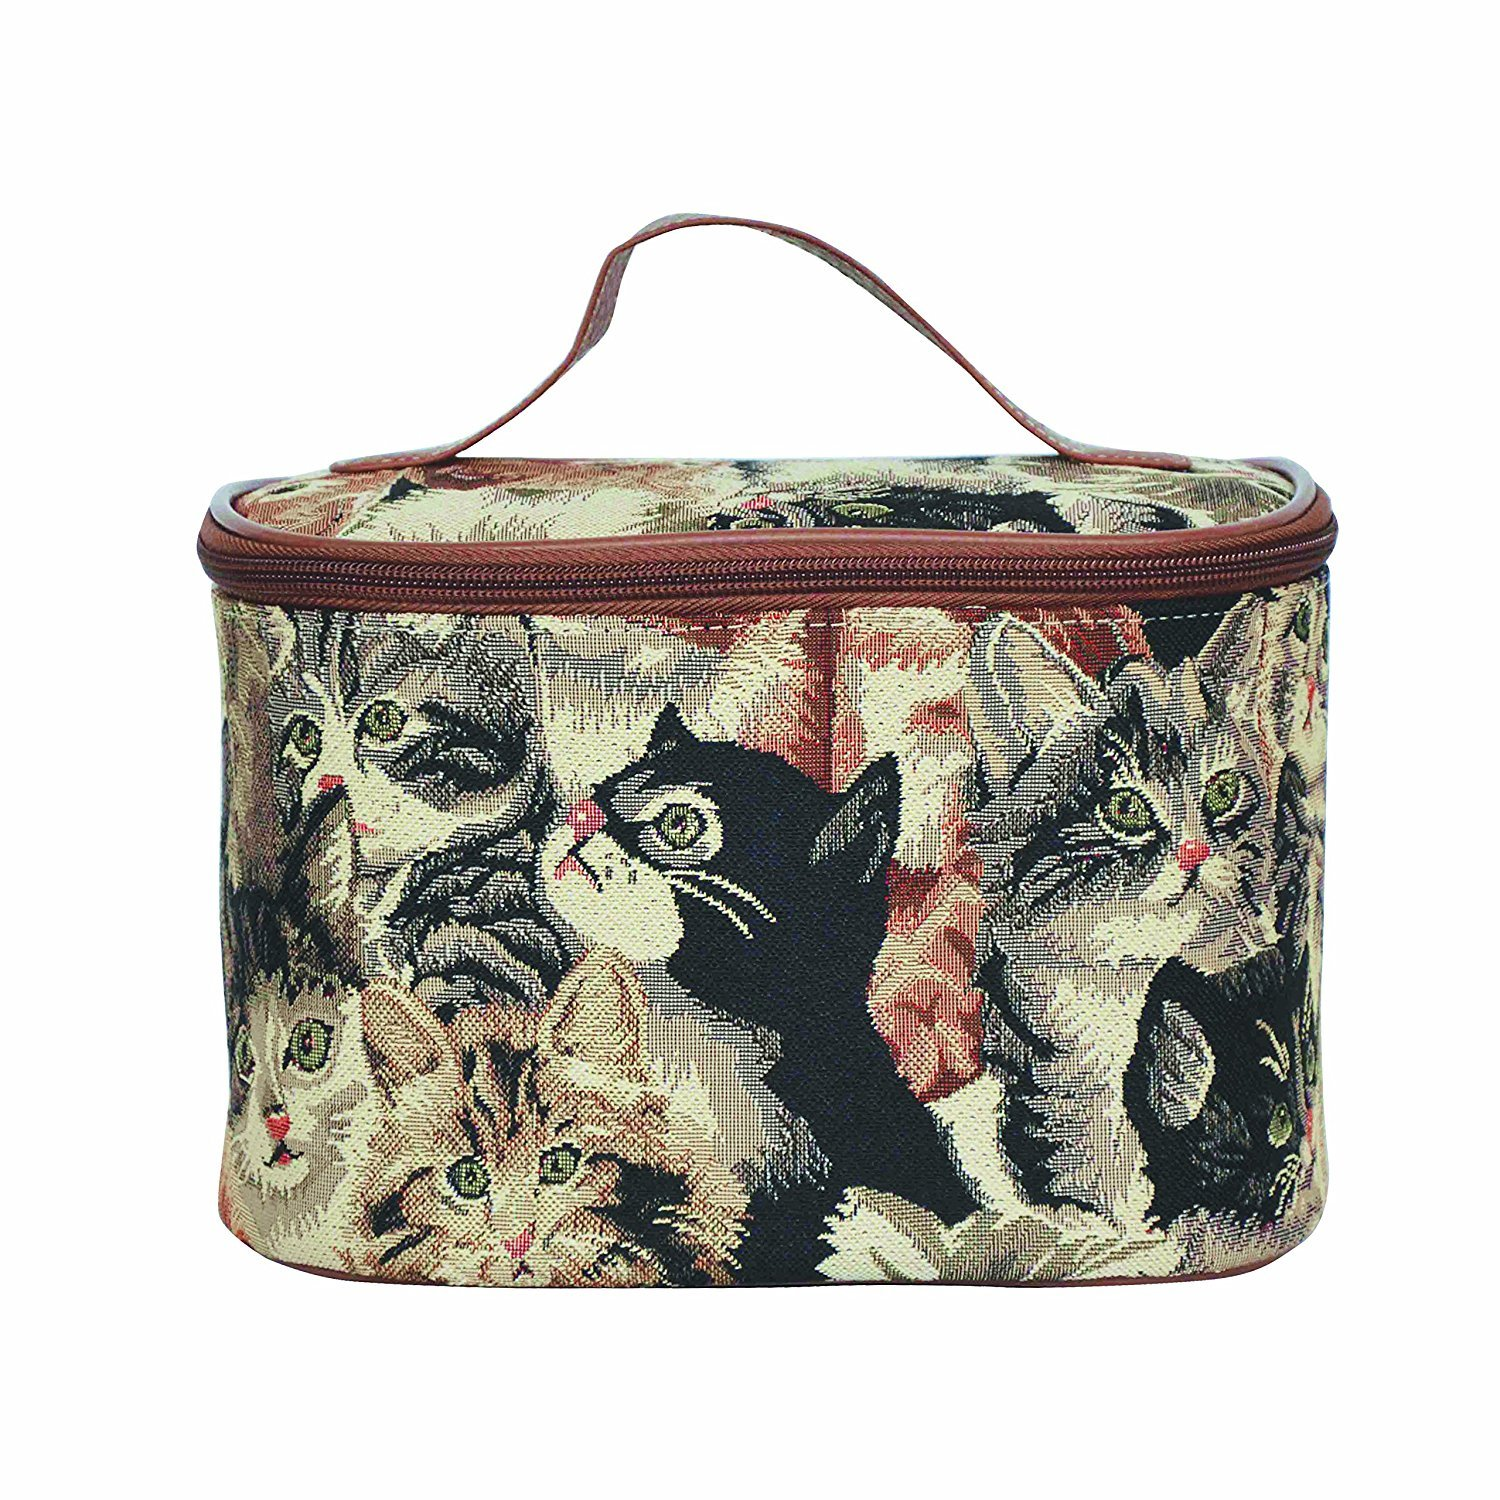 Cat Print Tapestry Tan Round Large Cosmetic Bag Travel Makeup Organizer Case with Handle Holder by Signare (TOIL-CAT)